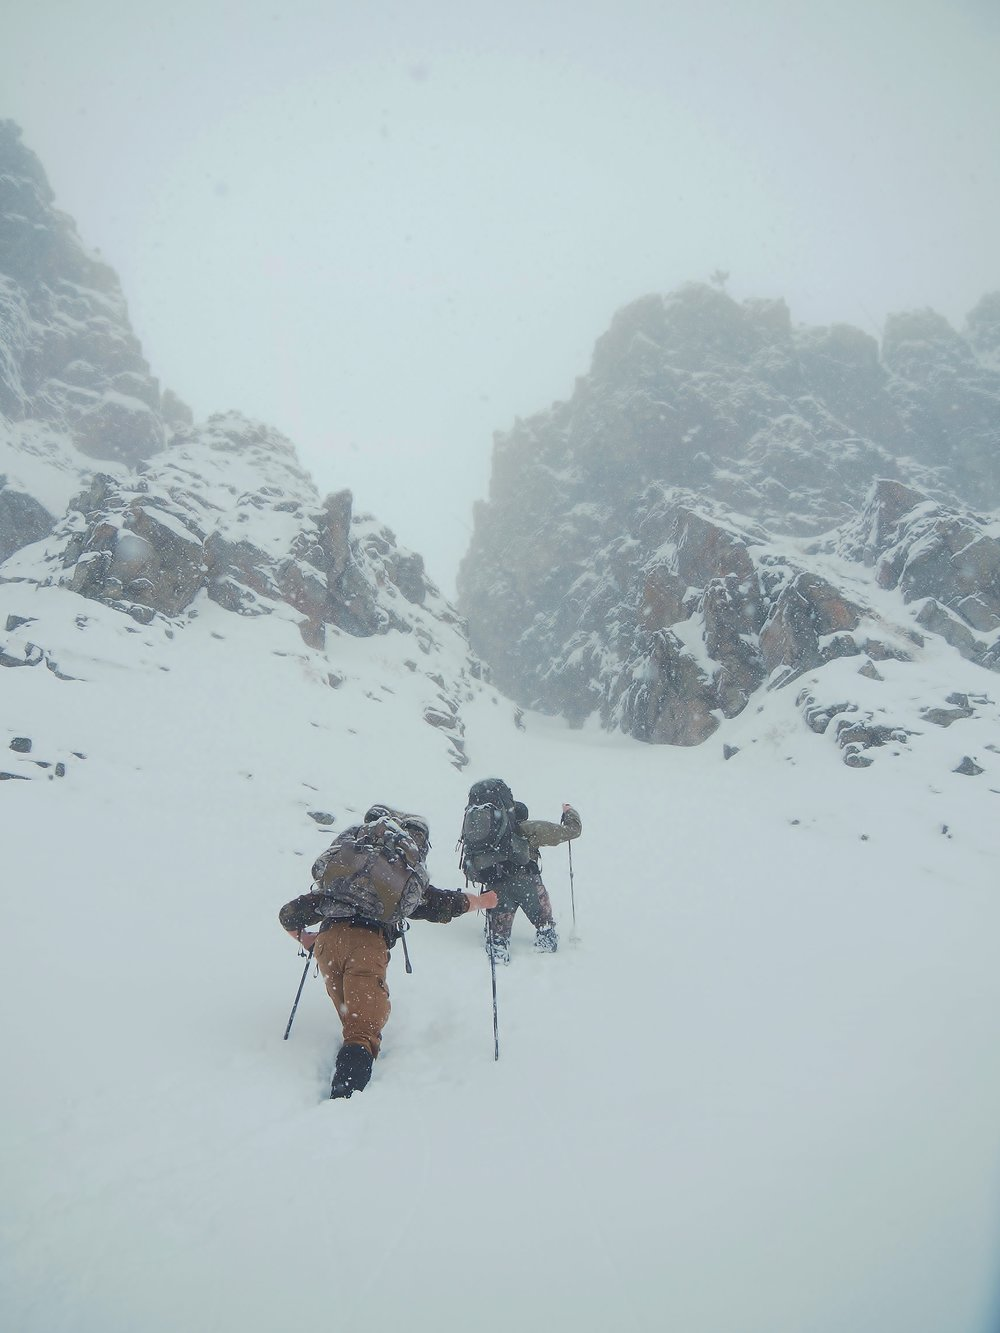 The brave souls (Dakota and Steve) making their way to the mouth of an unexpected couloir in the Shoshone National Forest.